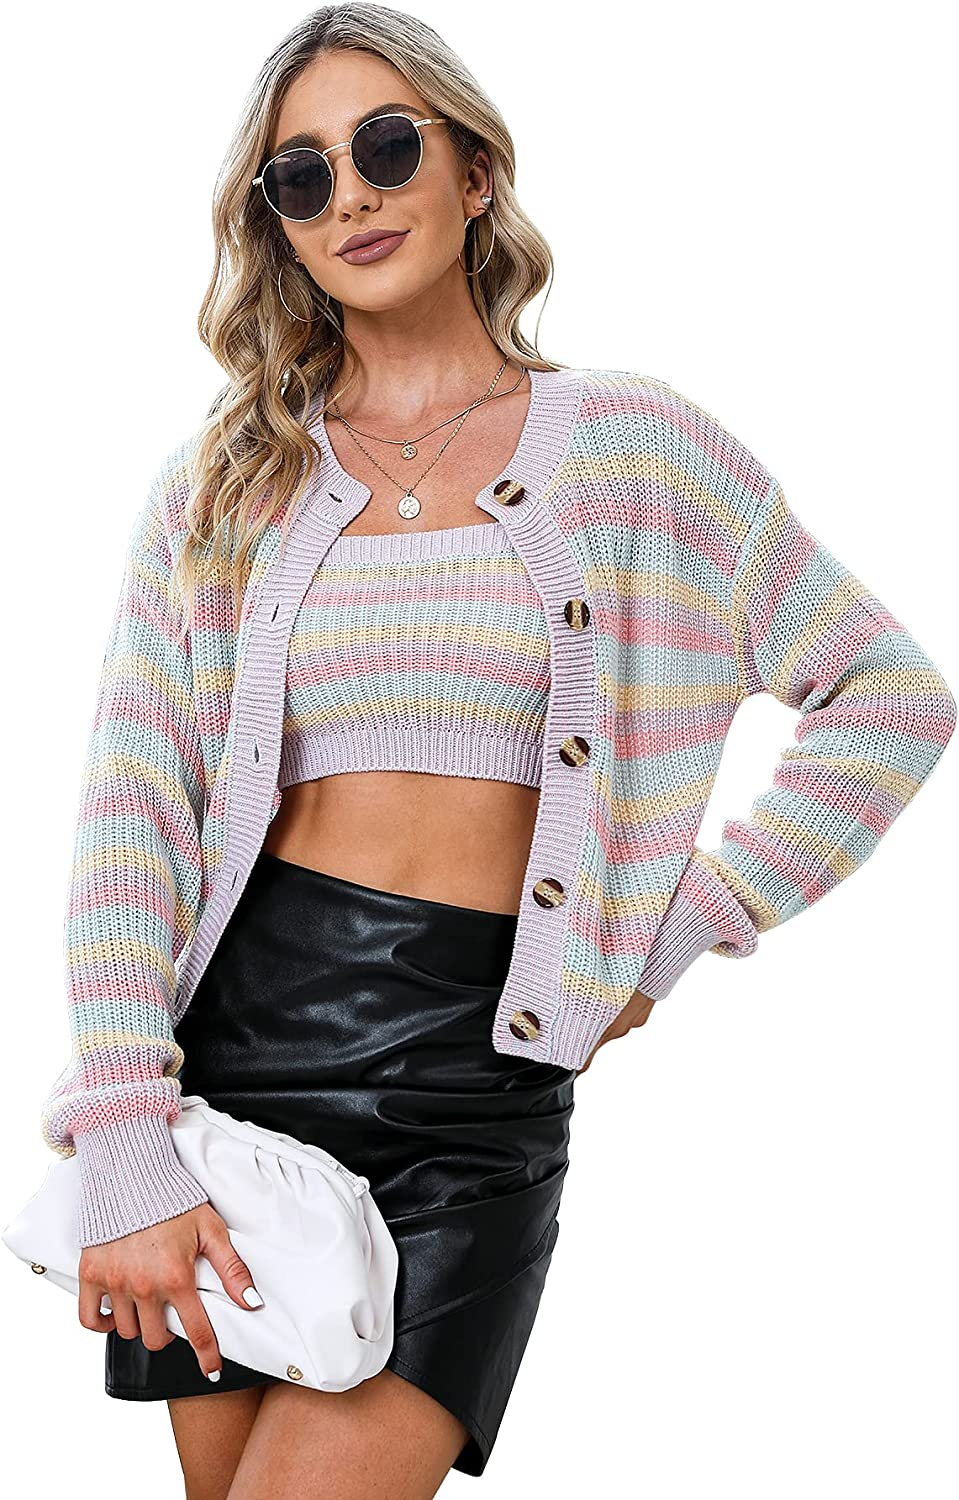 EXLURA Women's Button Down Open Front Knit Cardigans 2 Piece Cropped Sweater